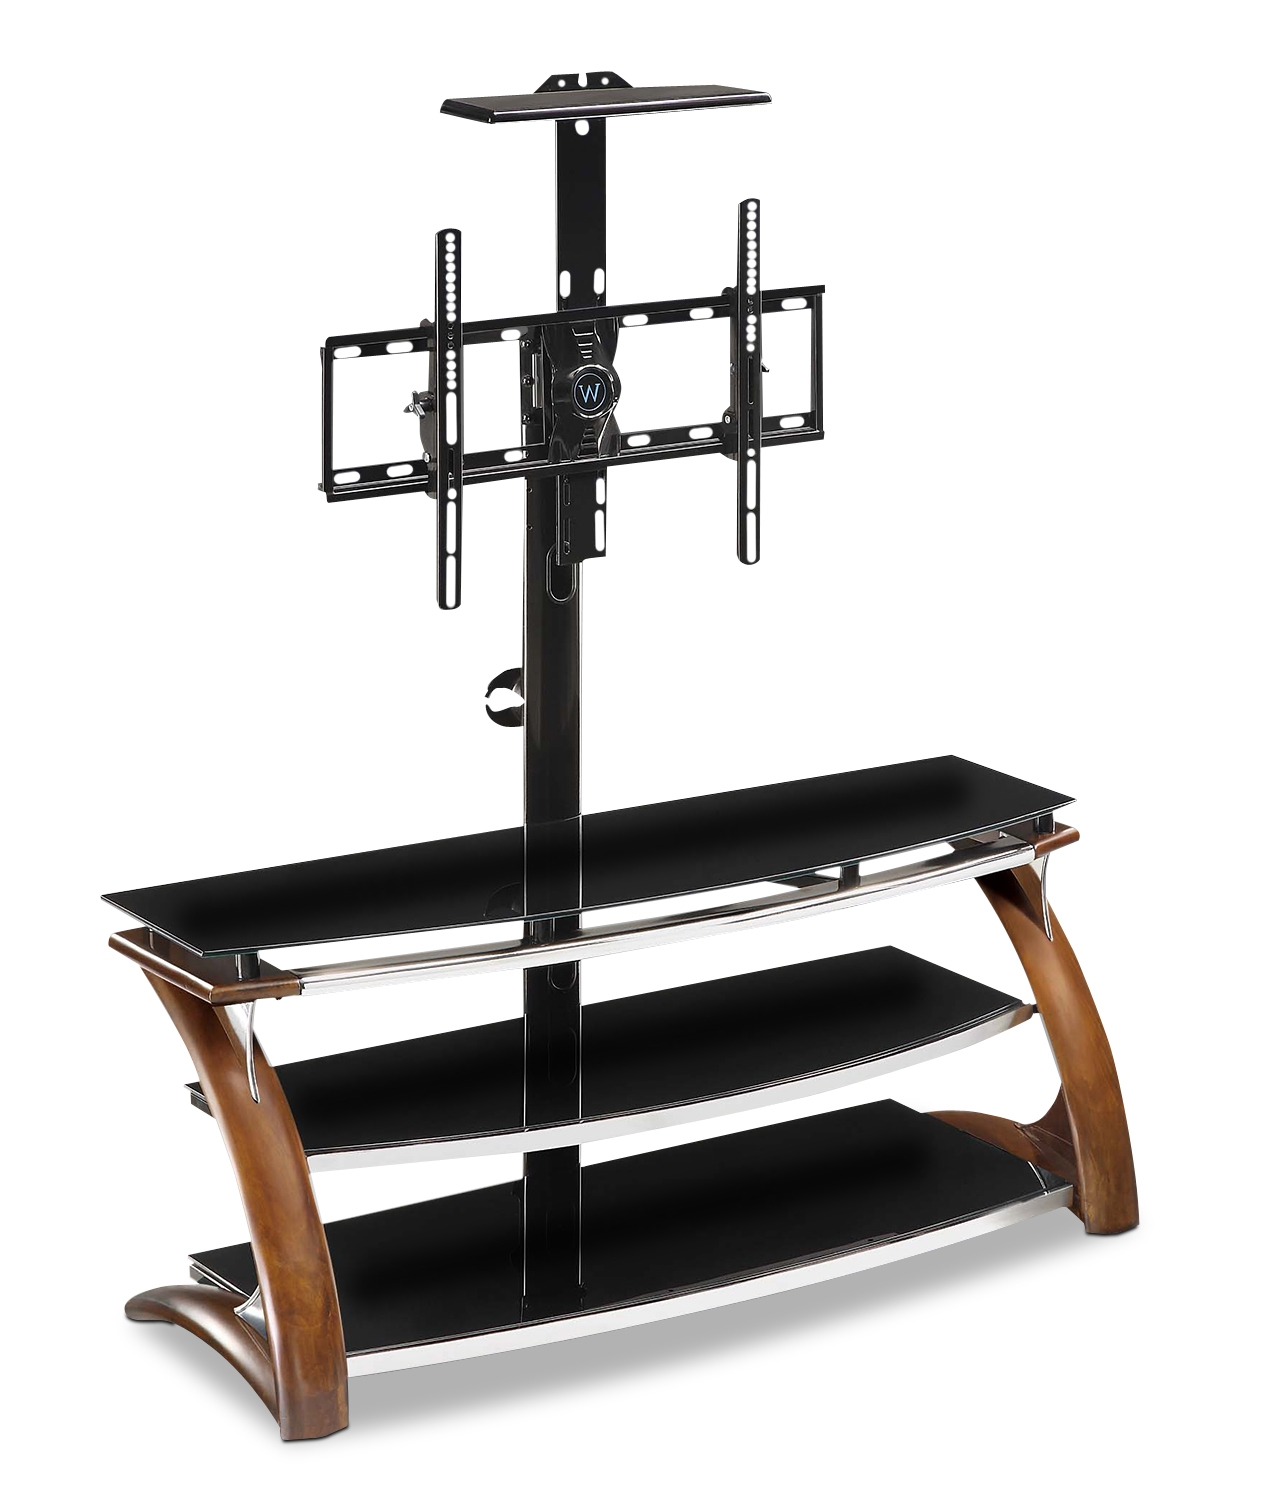 Classy whalen tv stand for furniture accessories design with whalen 3-in-1 tv stand